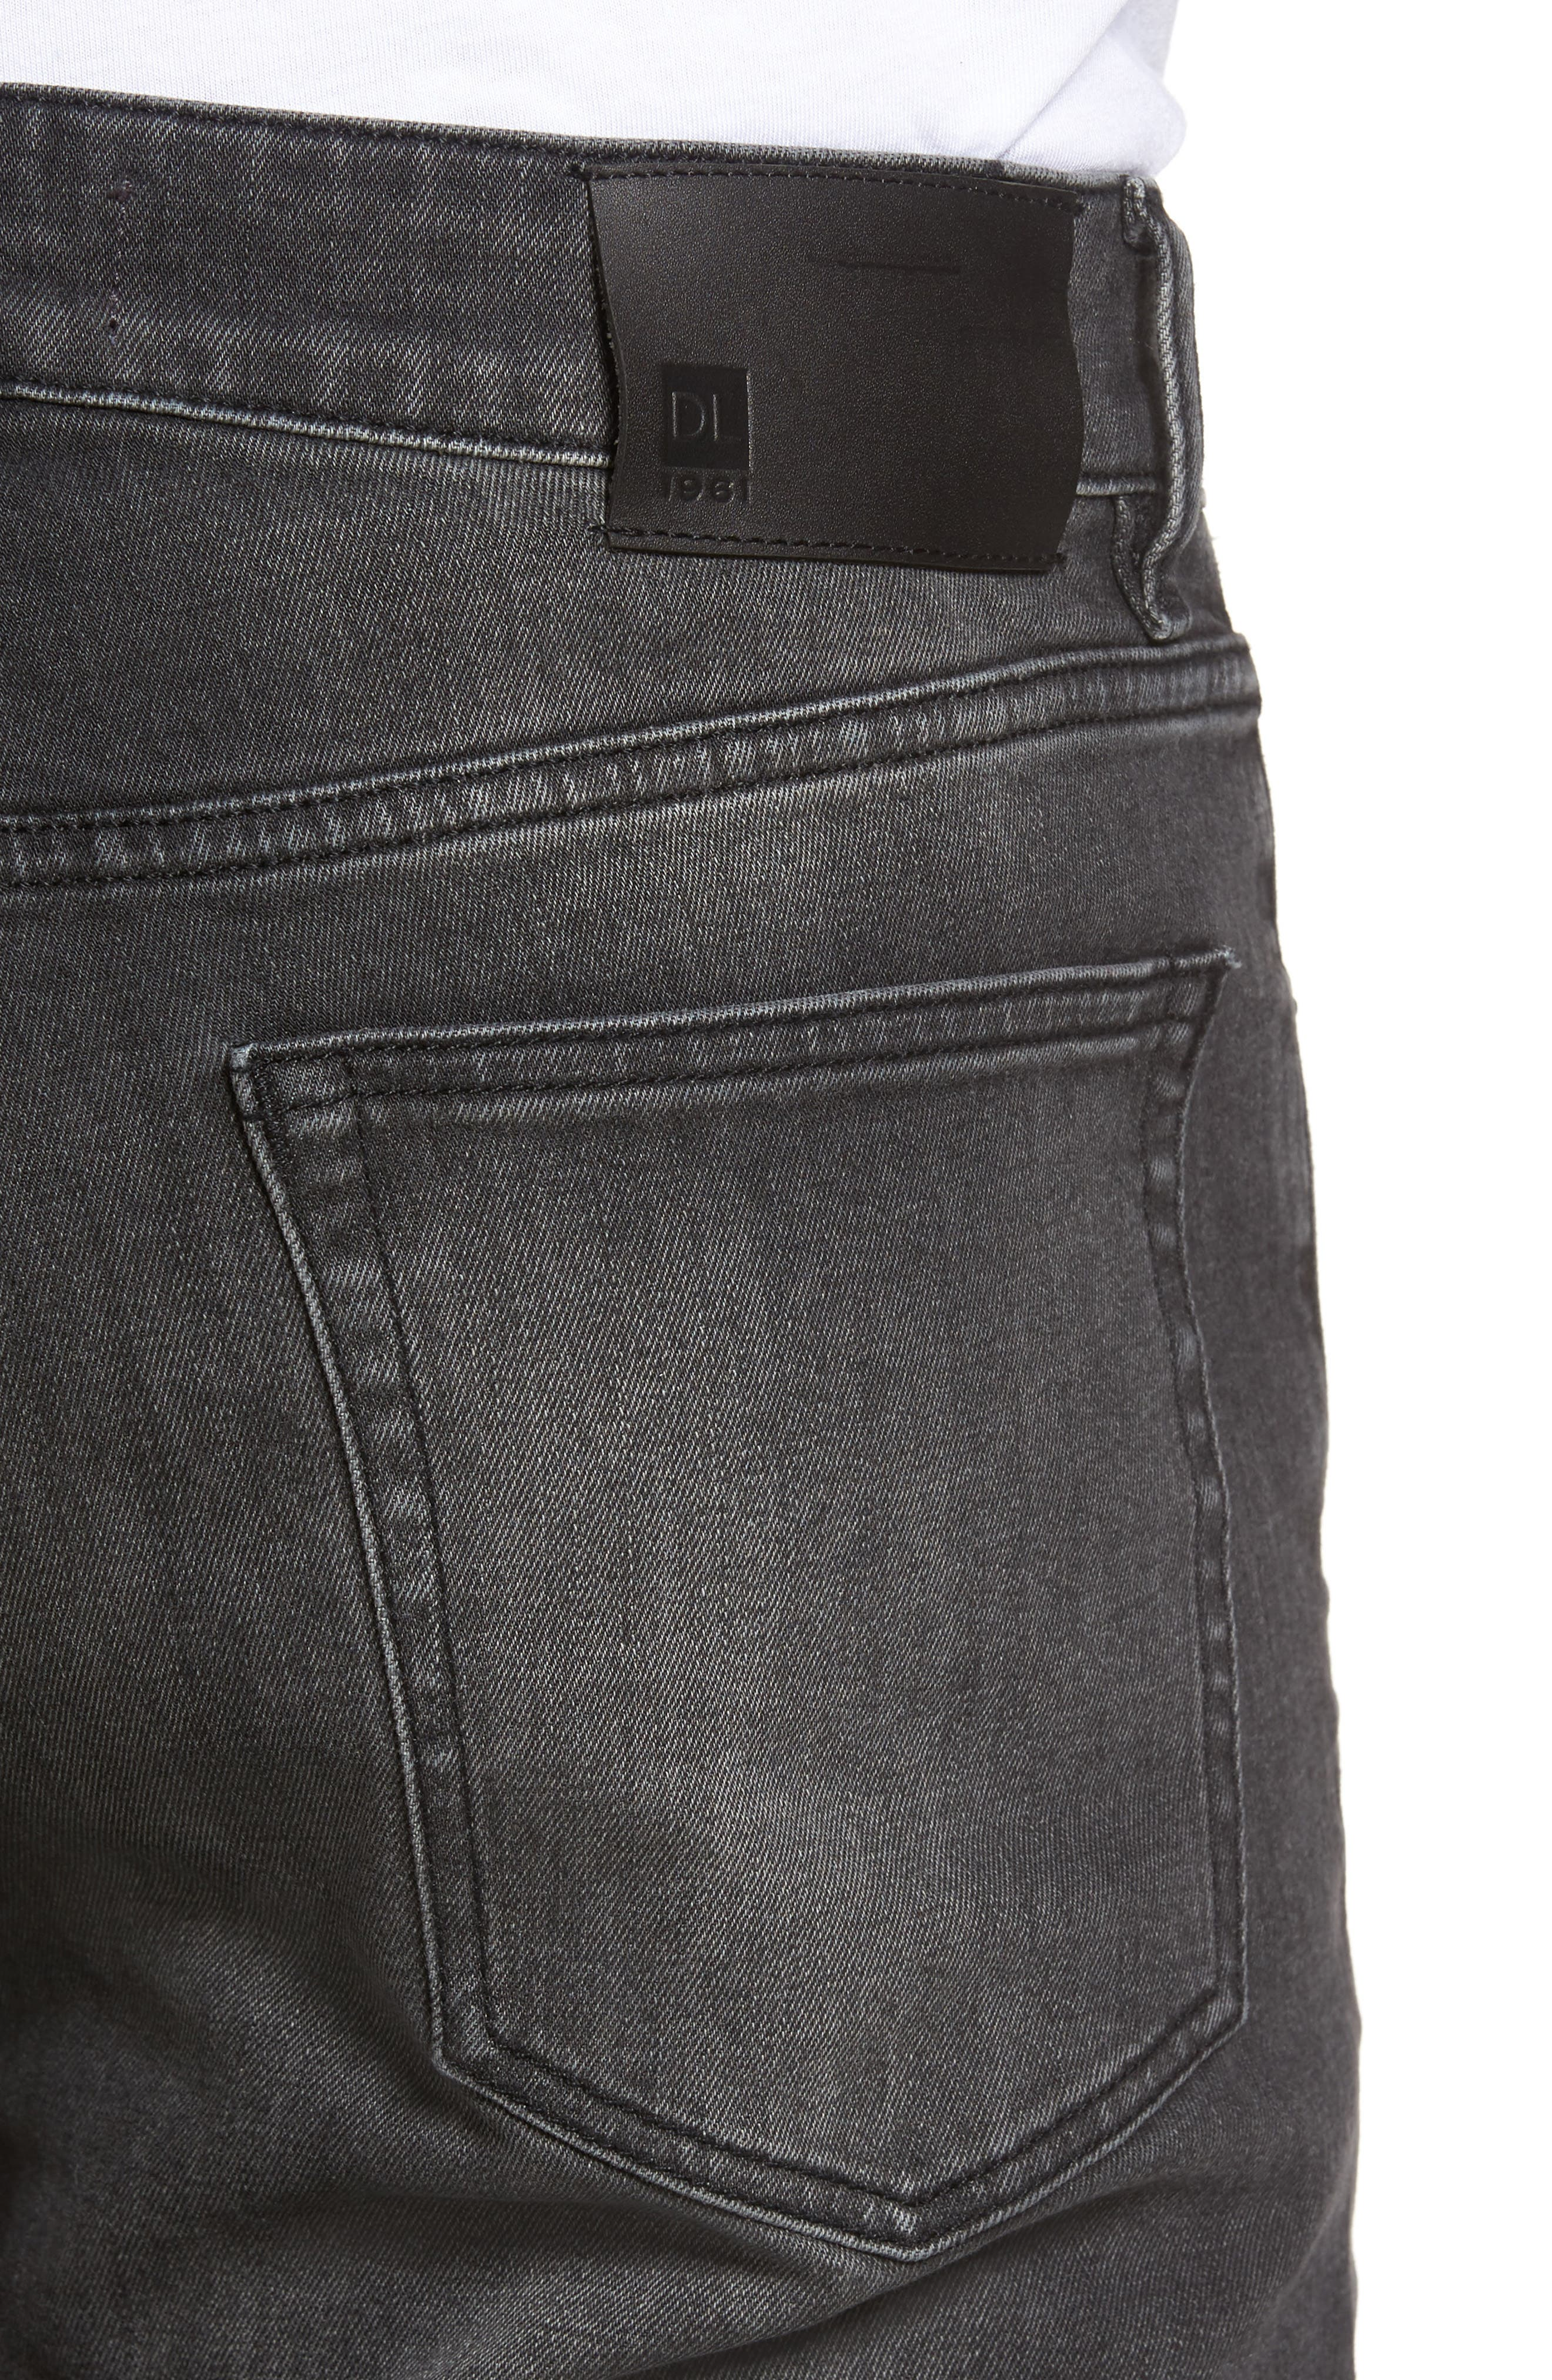 Russell Slim Straight Fit Jeans,                             Alternate thumbnail 4, color,                             Hound